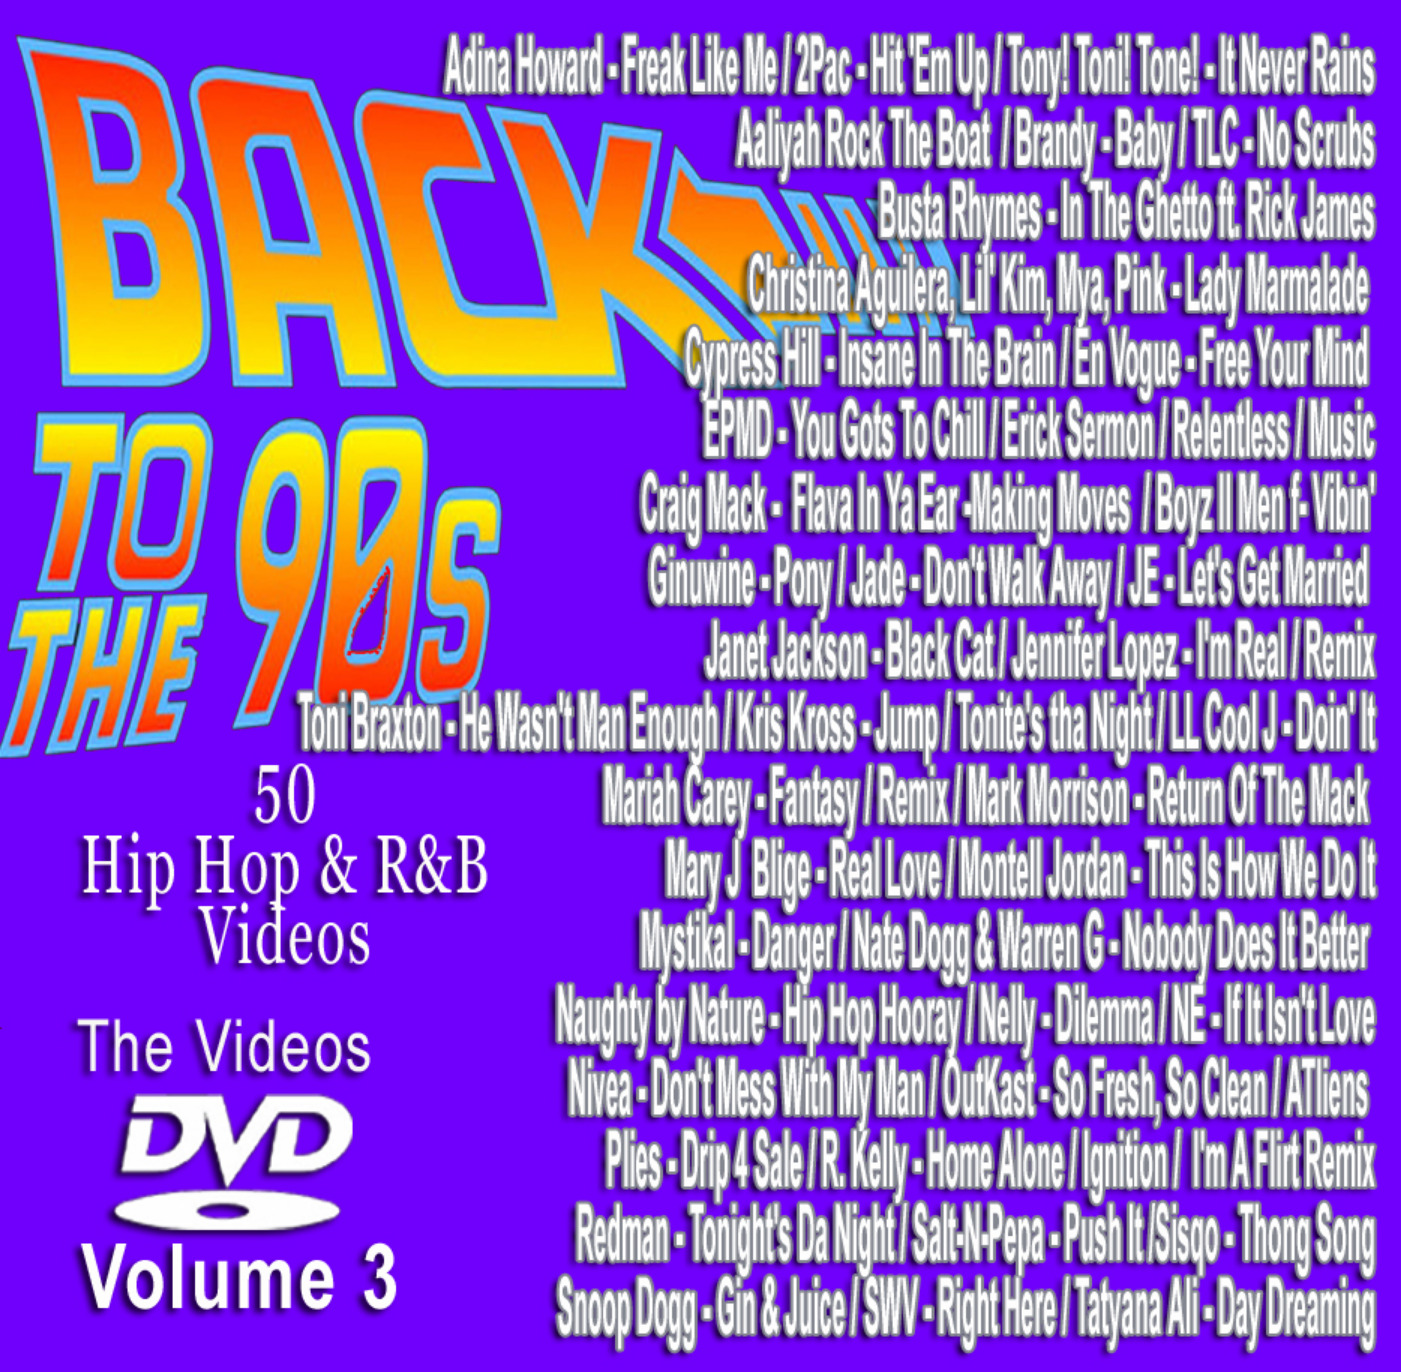 In The 90's Vol.3 MUSIC VIDEOS HIP HOP R&B Video Mix MP4